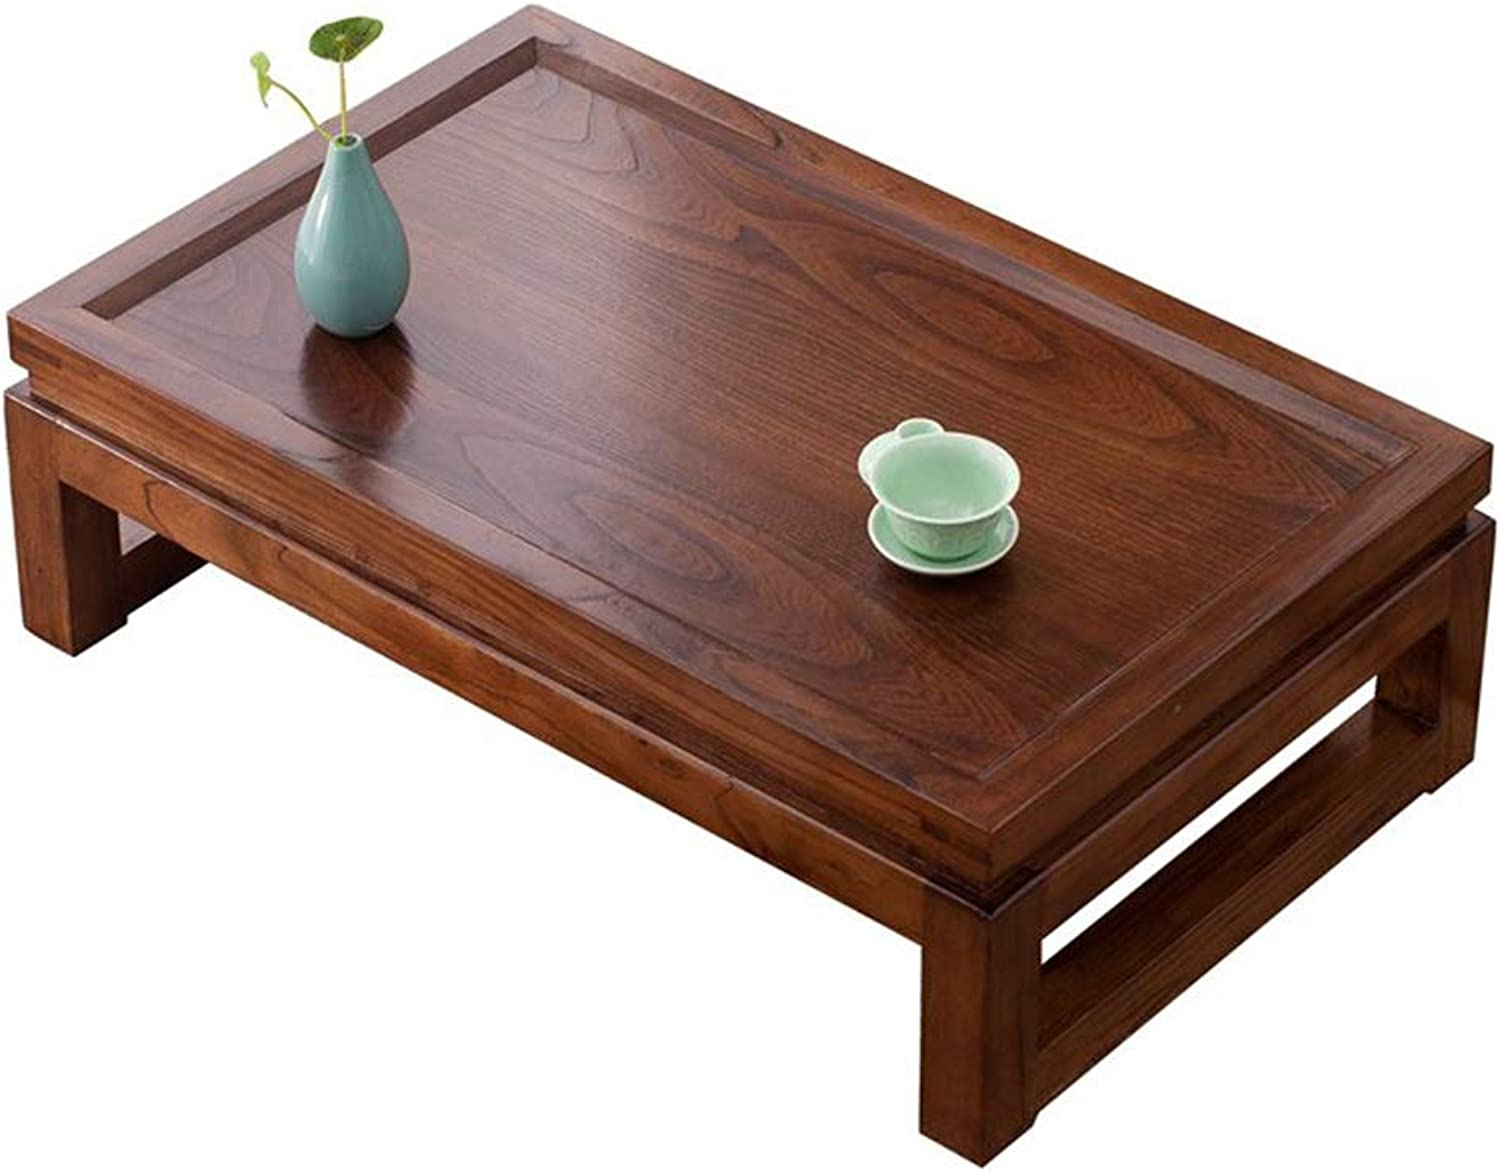 Living Room Furniture Tables Coffee Tables Coffee Table Living Room Solid Wood Small Table Tatami Coffee Table Balcony Window Table Computer Table Tea Table